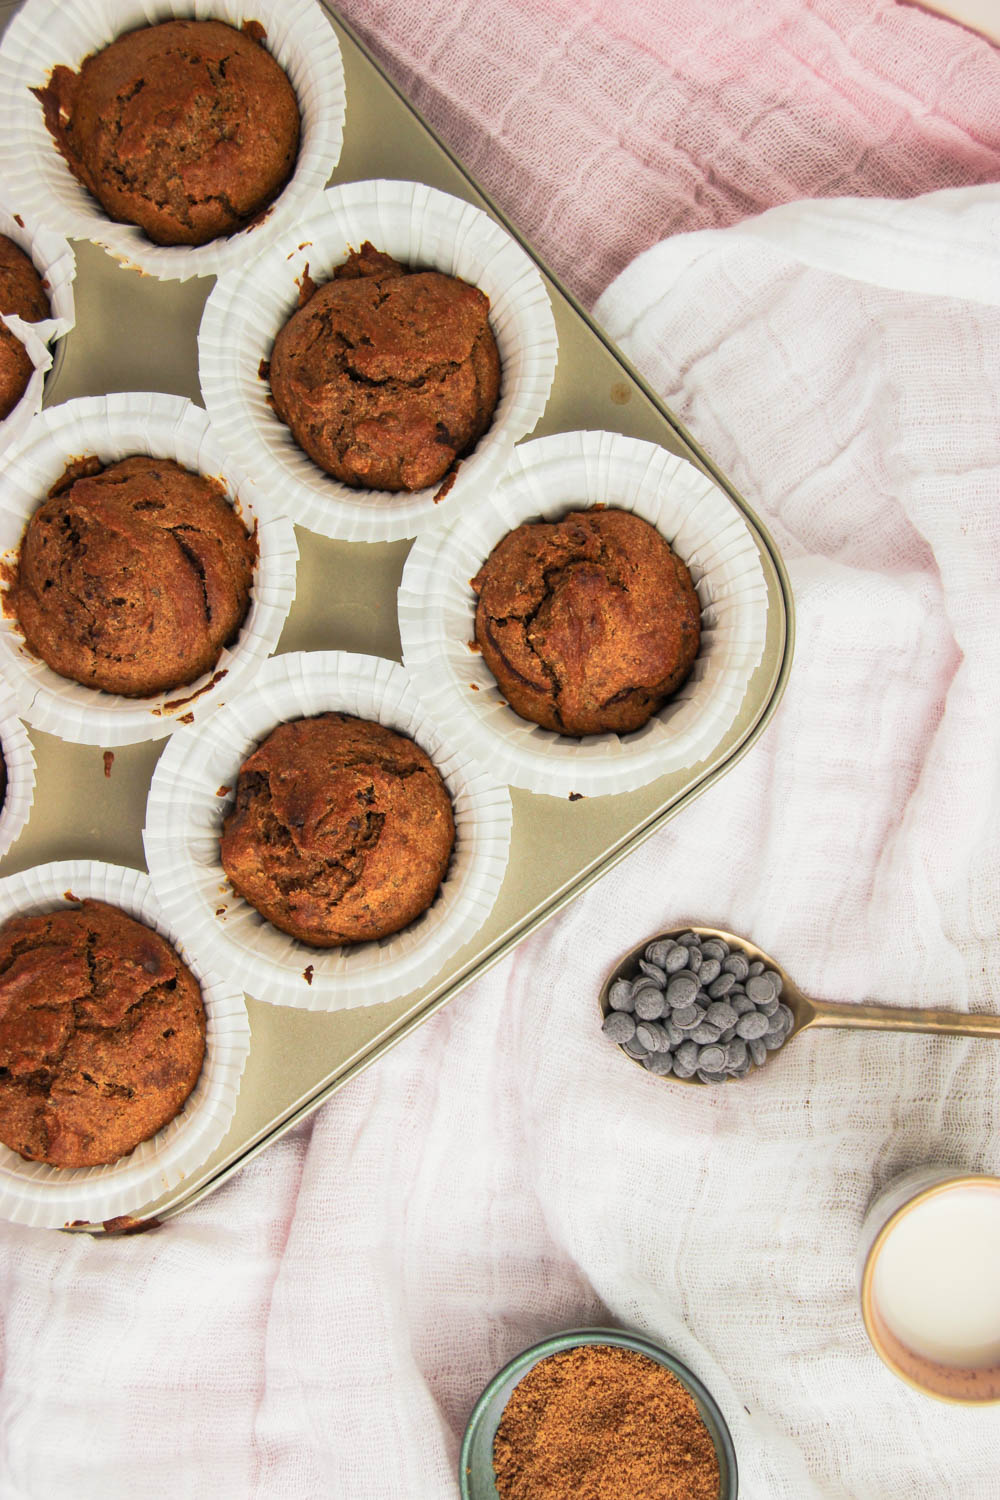 Healthy Pumpkin Muffins with chocolate chips and oat milk on the side.